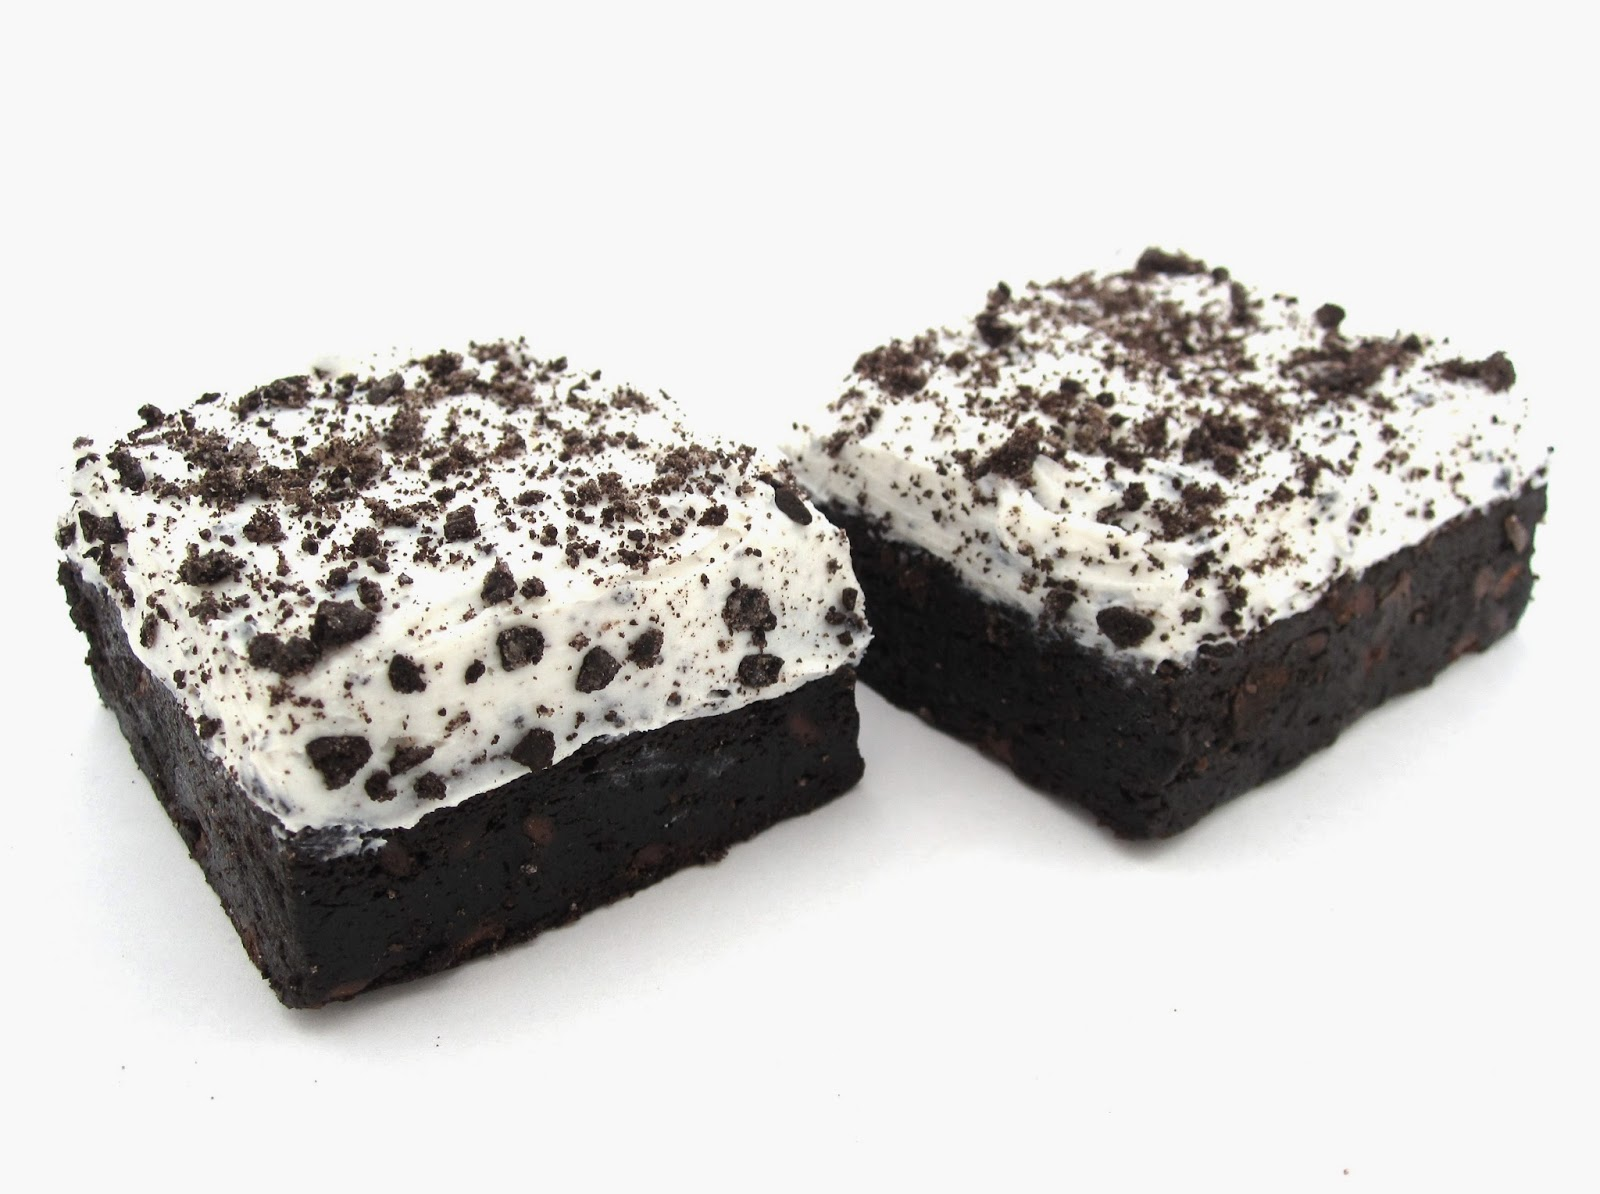 ... favorite ice cream in brownie form, with Cookies and Cream brownies